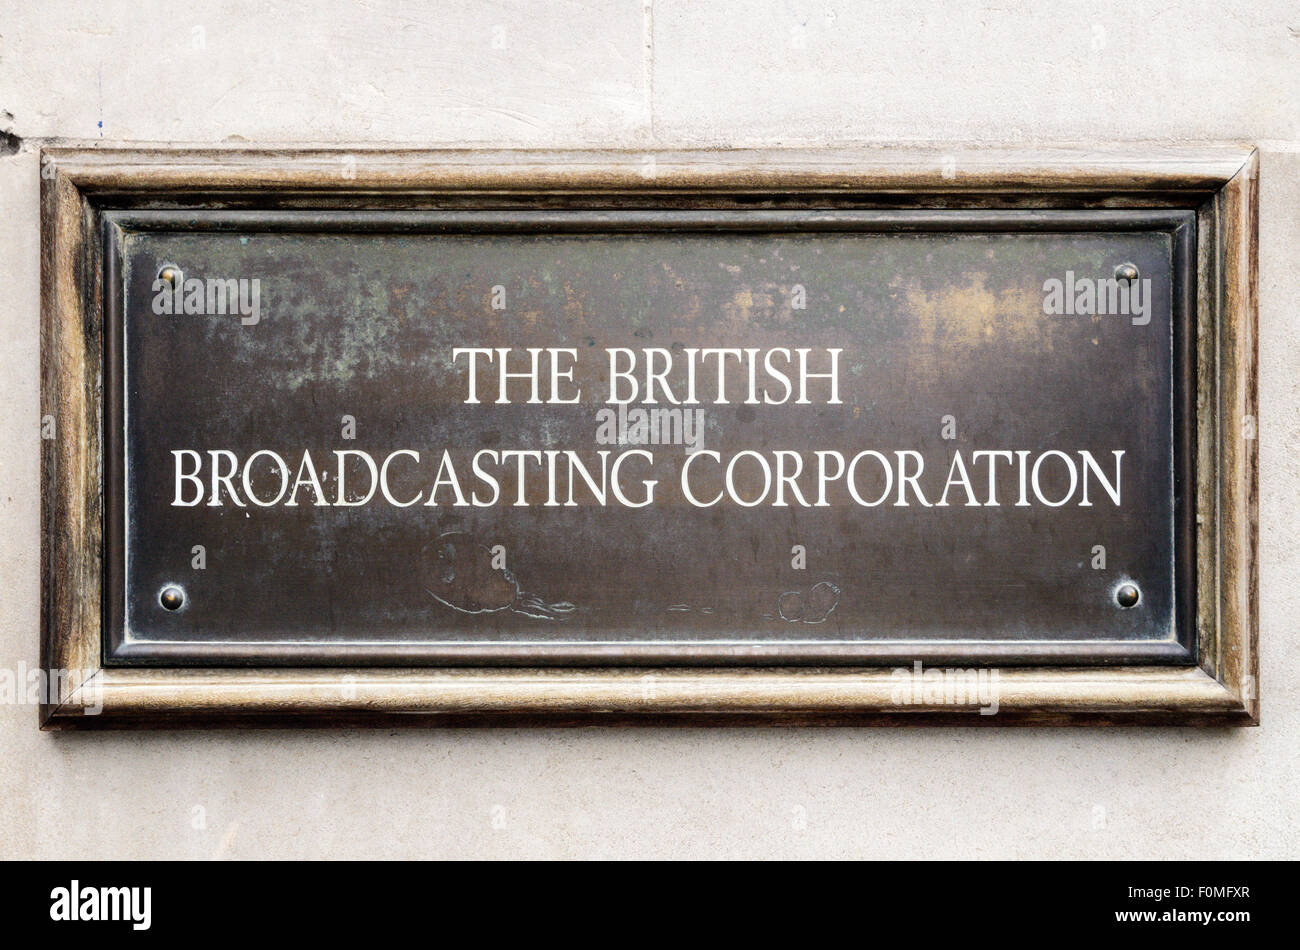 The sign for The British Broadcasting Corporation on the wall of Broadcasting House, Langham Place, London, England, - Stock Image